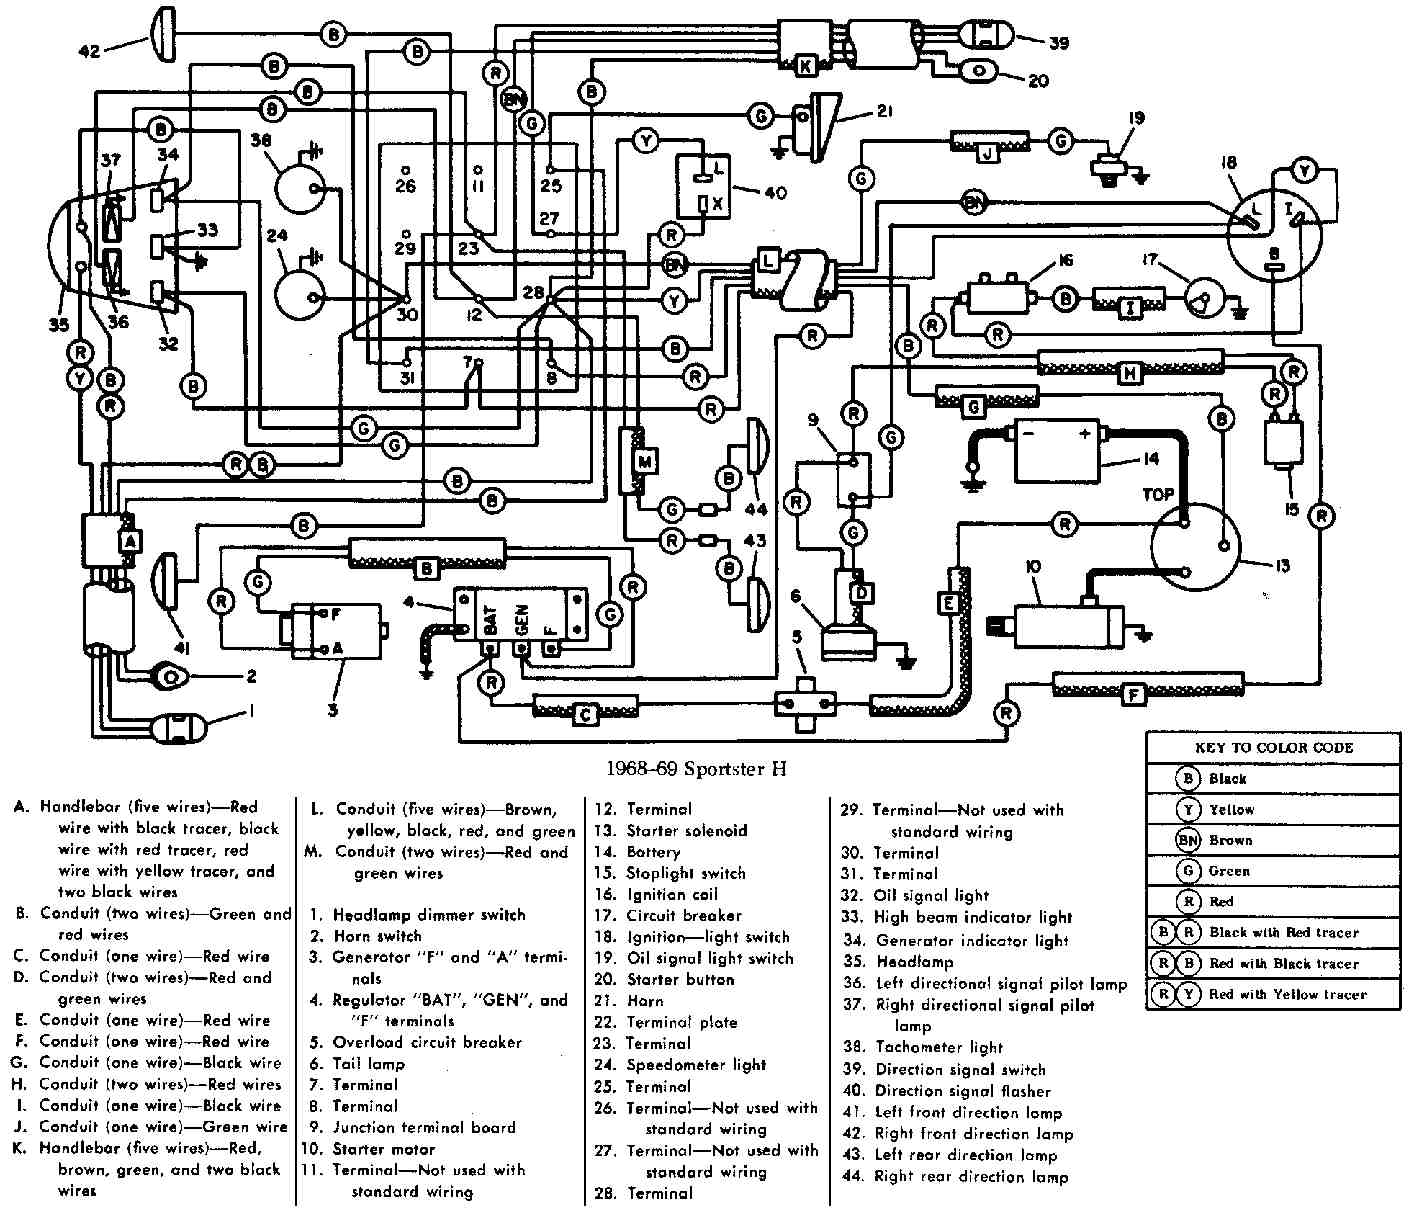 Harley Davidson Sportster 1968 1969 on 2004 chrysler town and country fuse box diagram